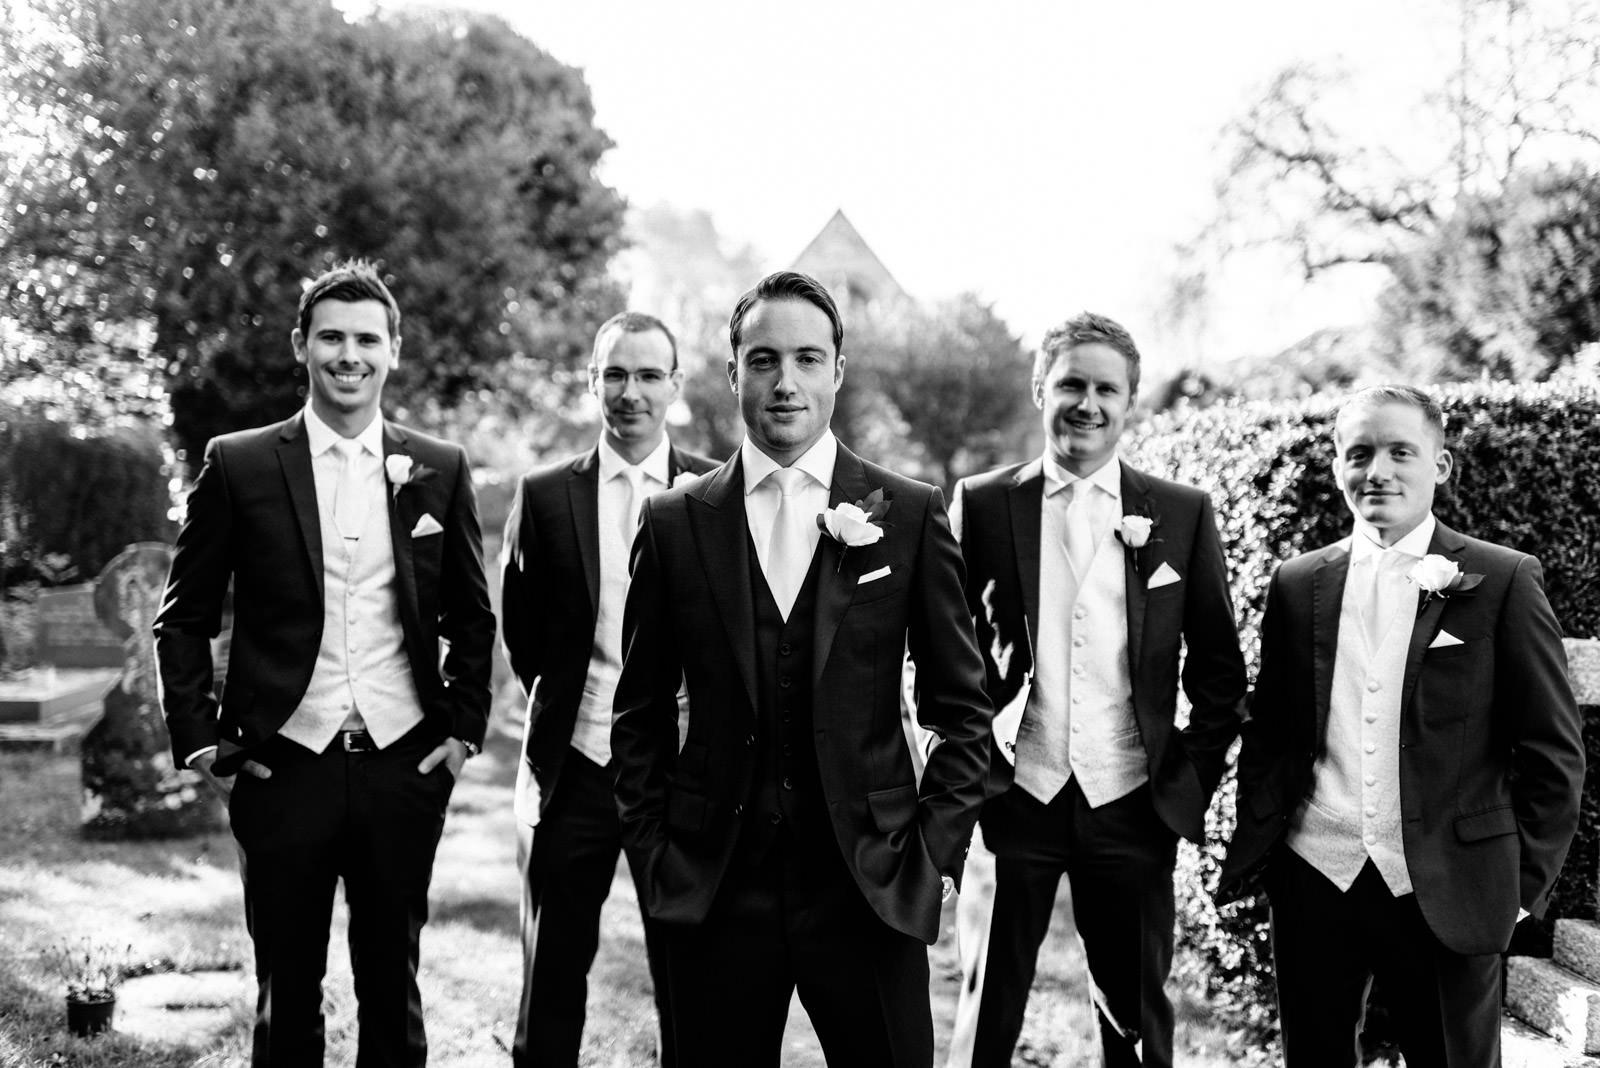 Groom Best Man and Groomsman formal group photo